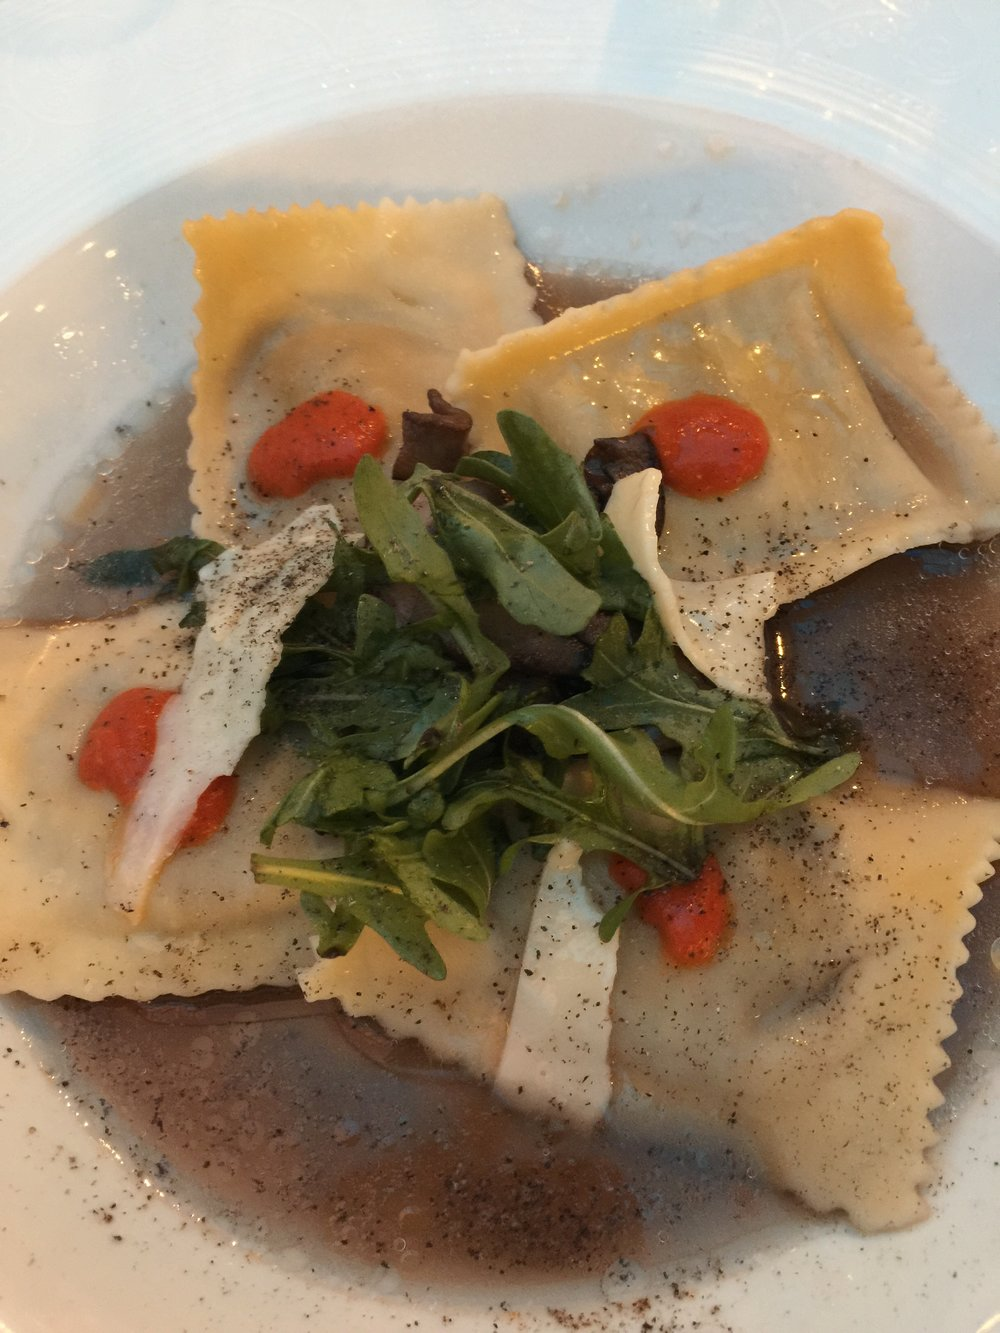 Wild Mushroom Stuffed Pasta in Vegetable Broth